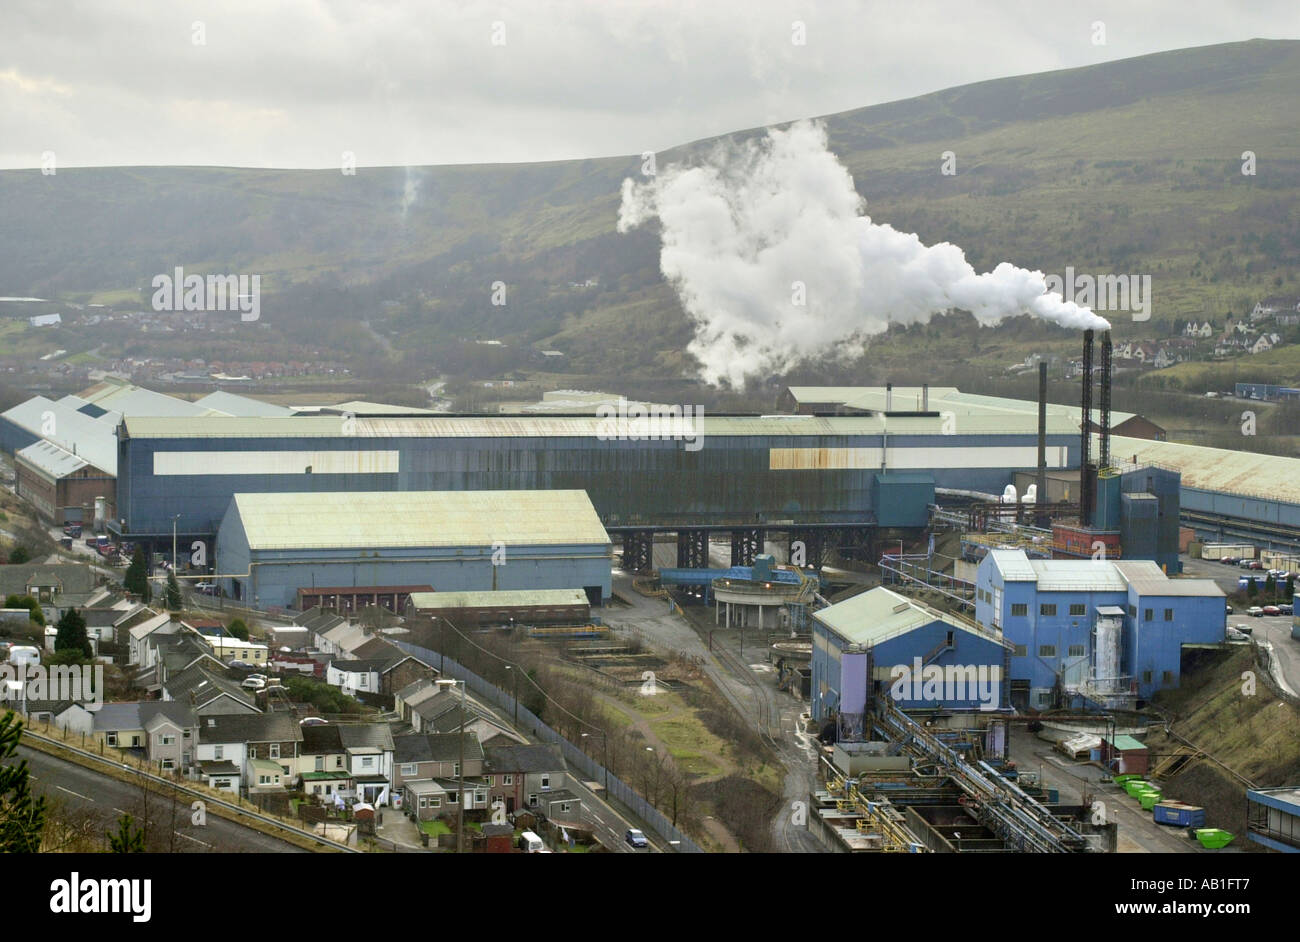 view-over-corus-ebbw-vale-tinplate-works-where-there-was-over-200-AB1FT7.jpg